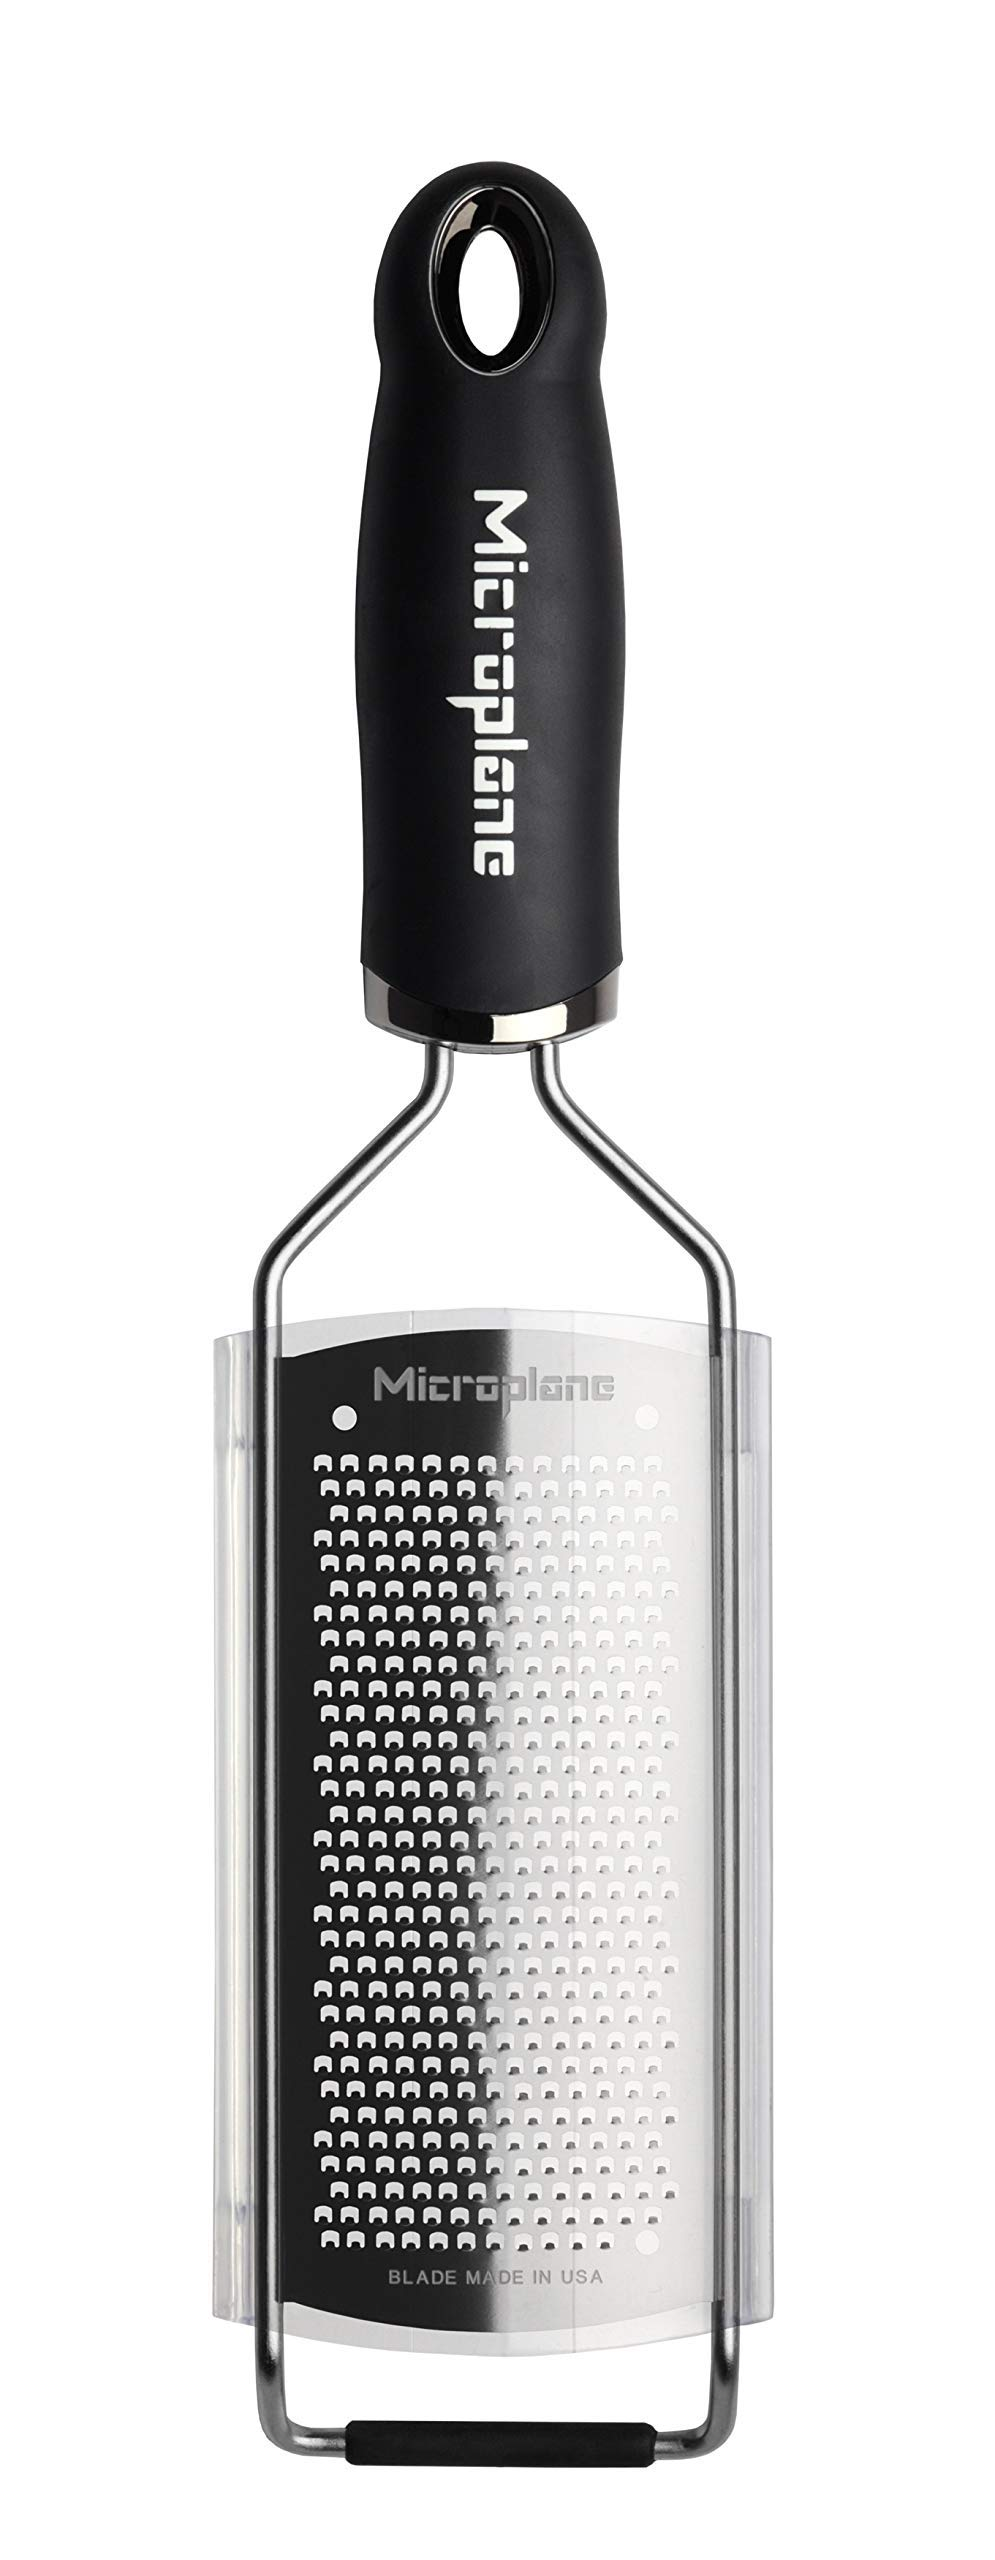 Microplane 0098399450049 45004 Grater Gourmet FINE, one size, silver by Microplane